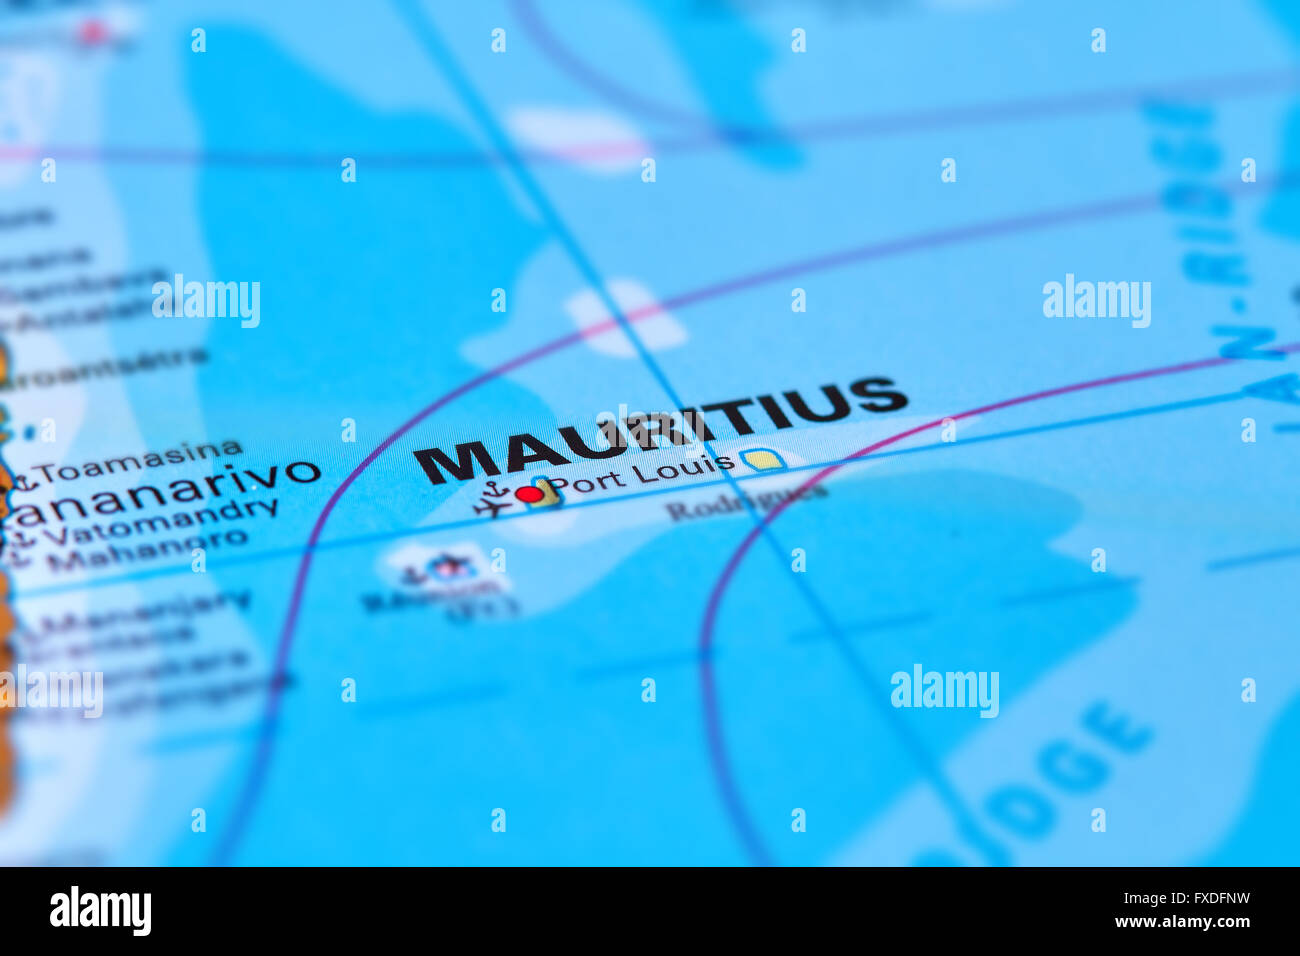 Mauritius island in the indian ocean on the world map stock photo mauritius island in the indian ocean on the world map sciox Gallery